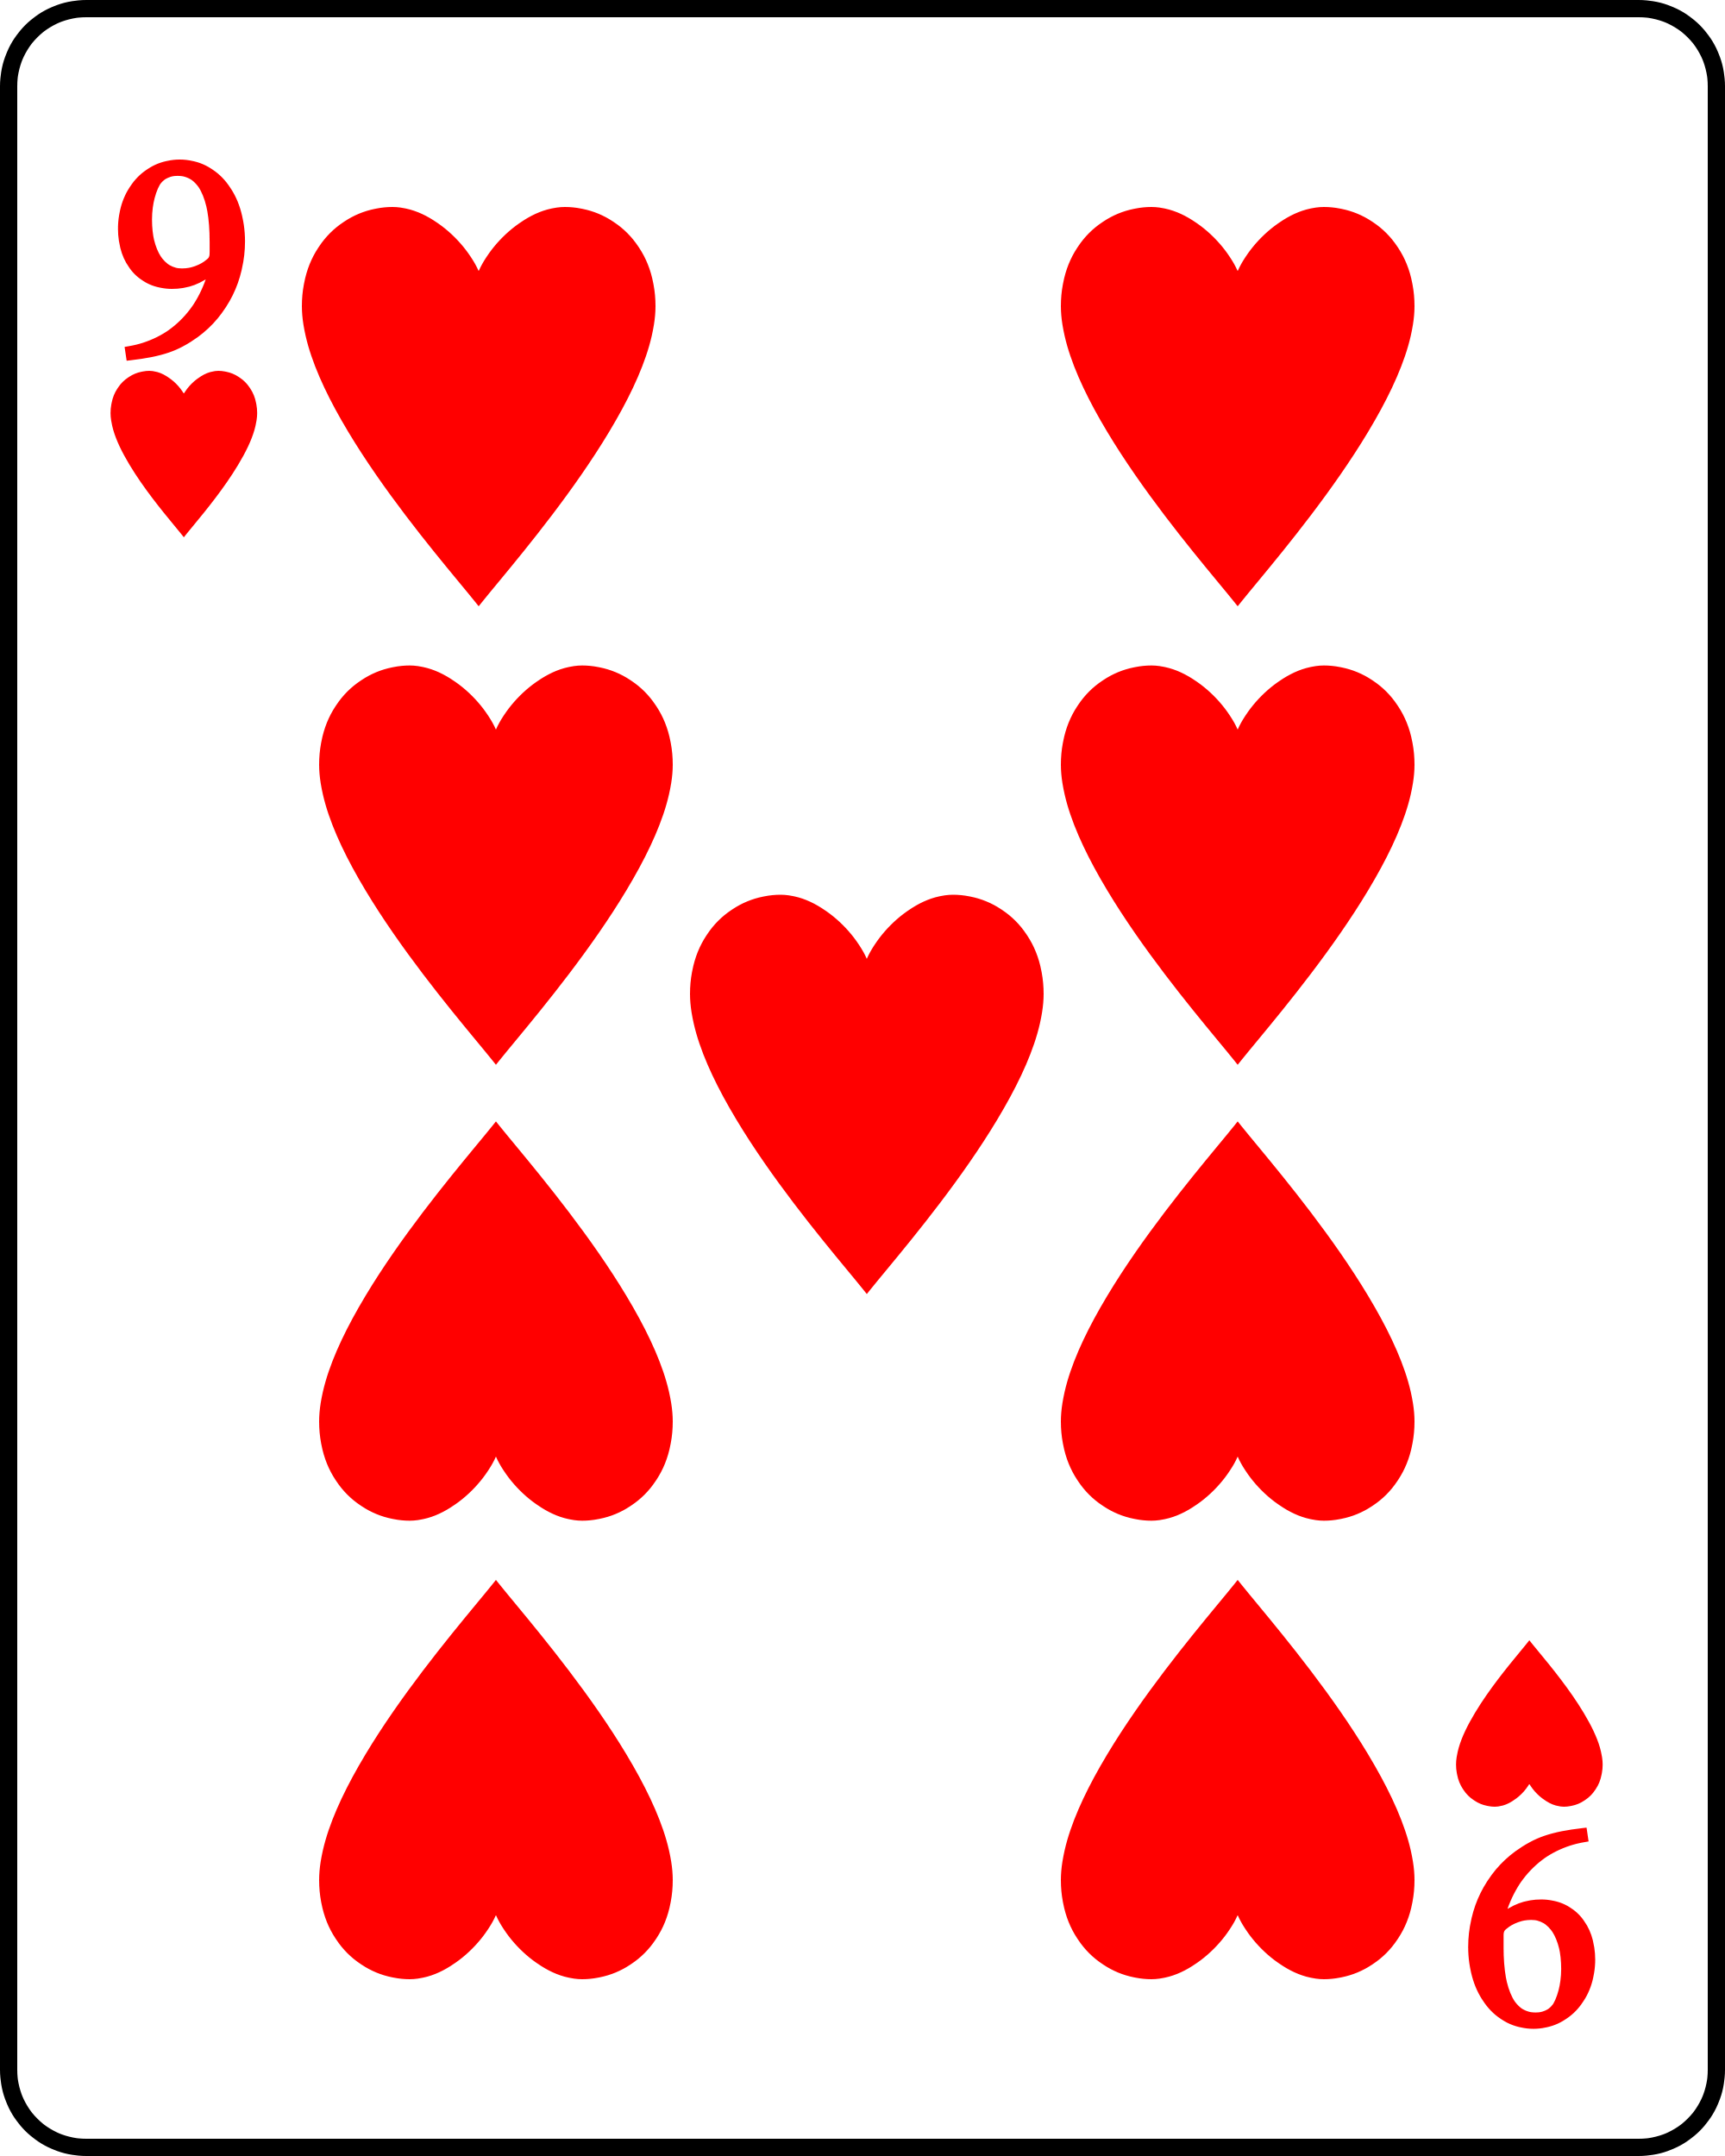 play hearts card game free download